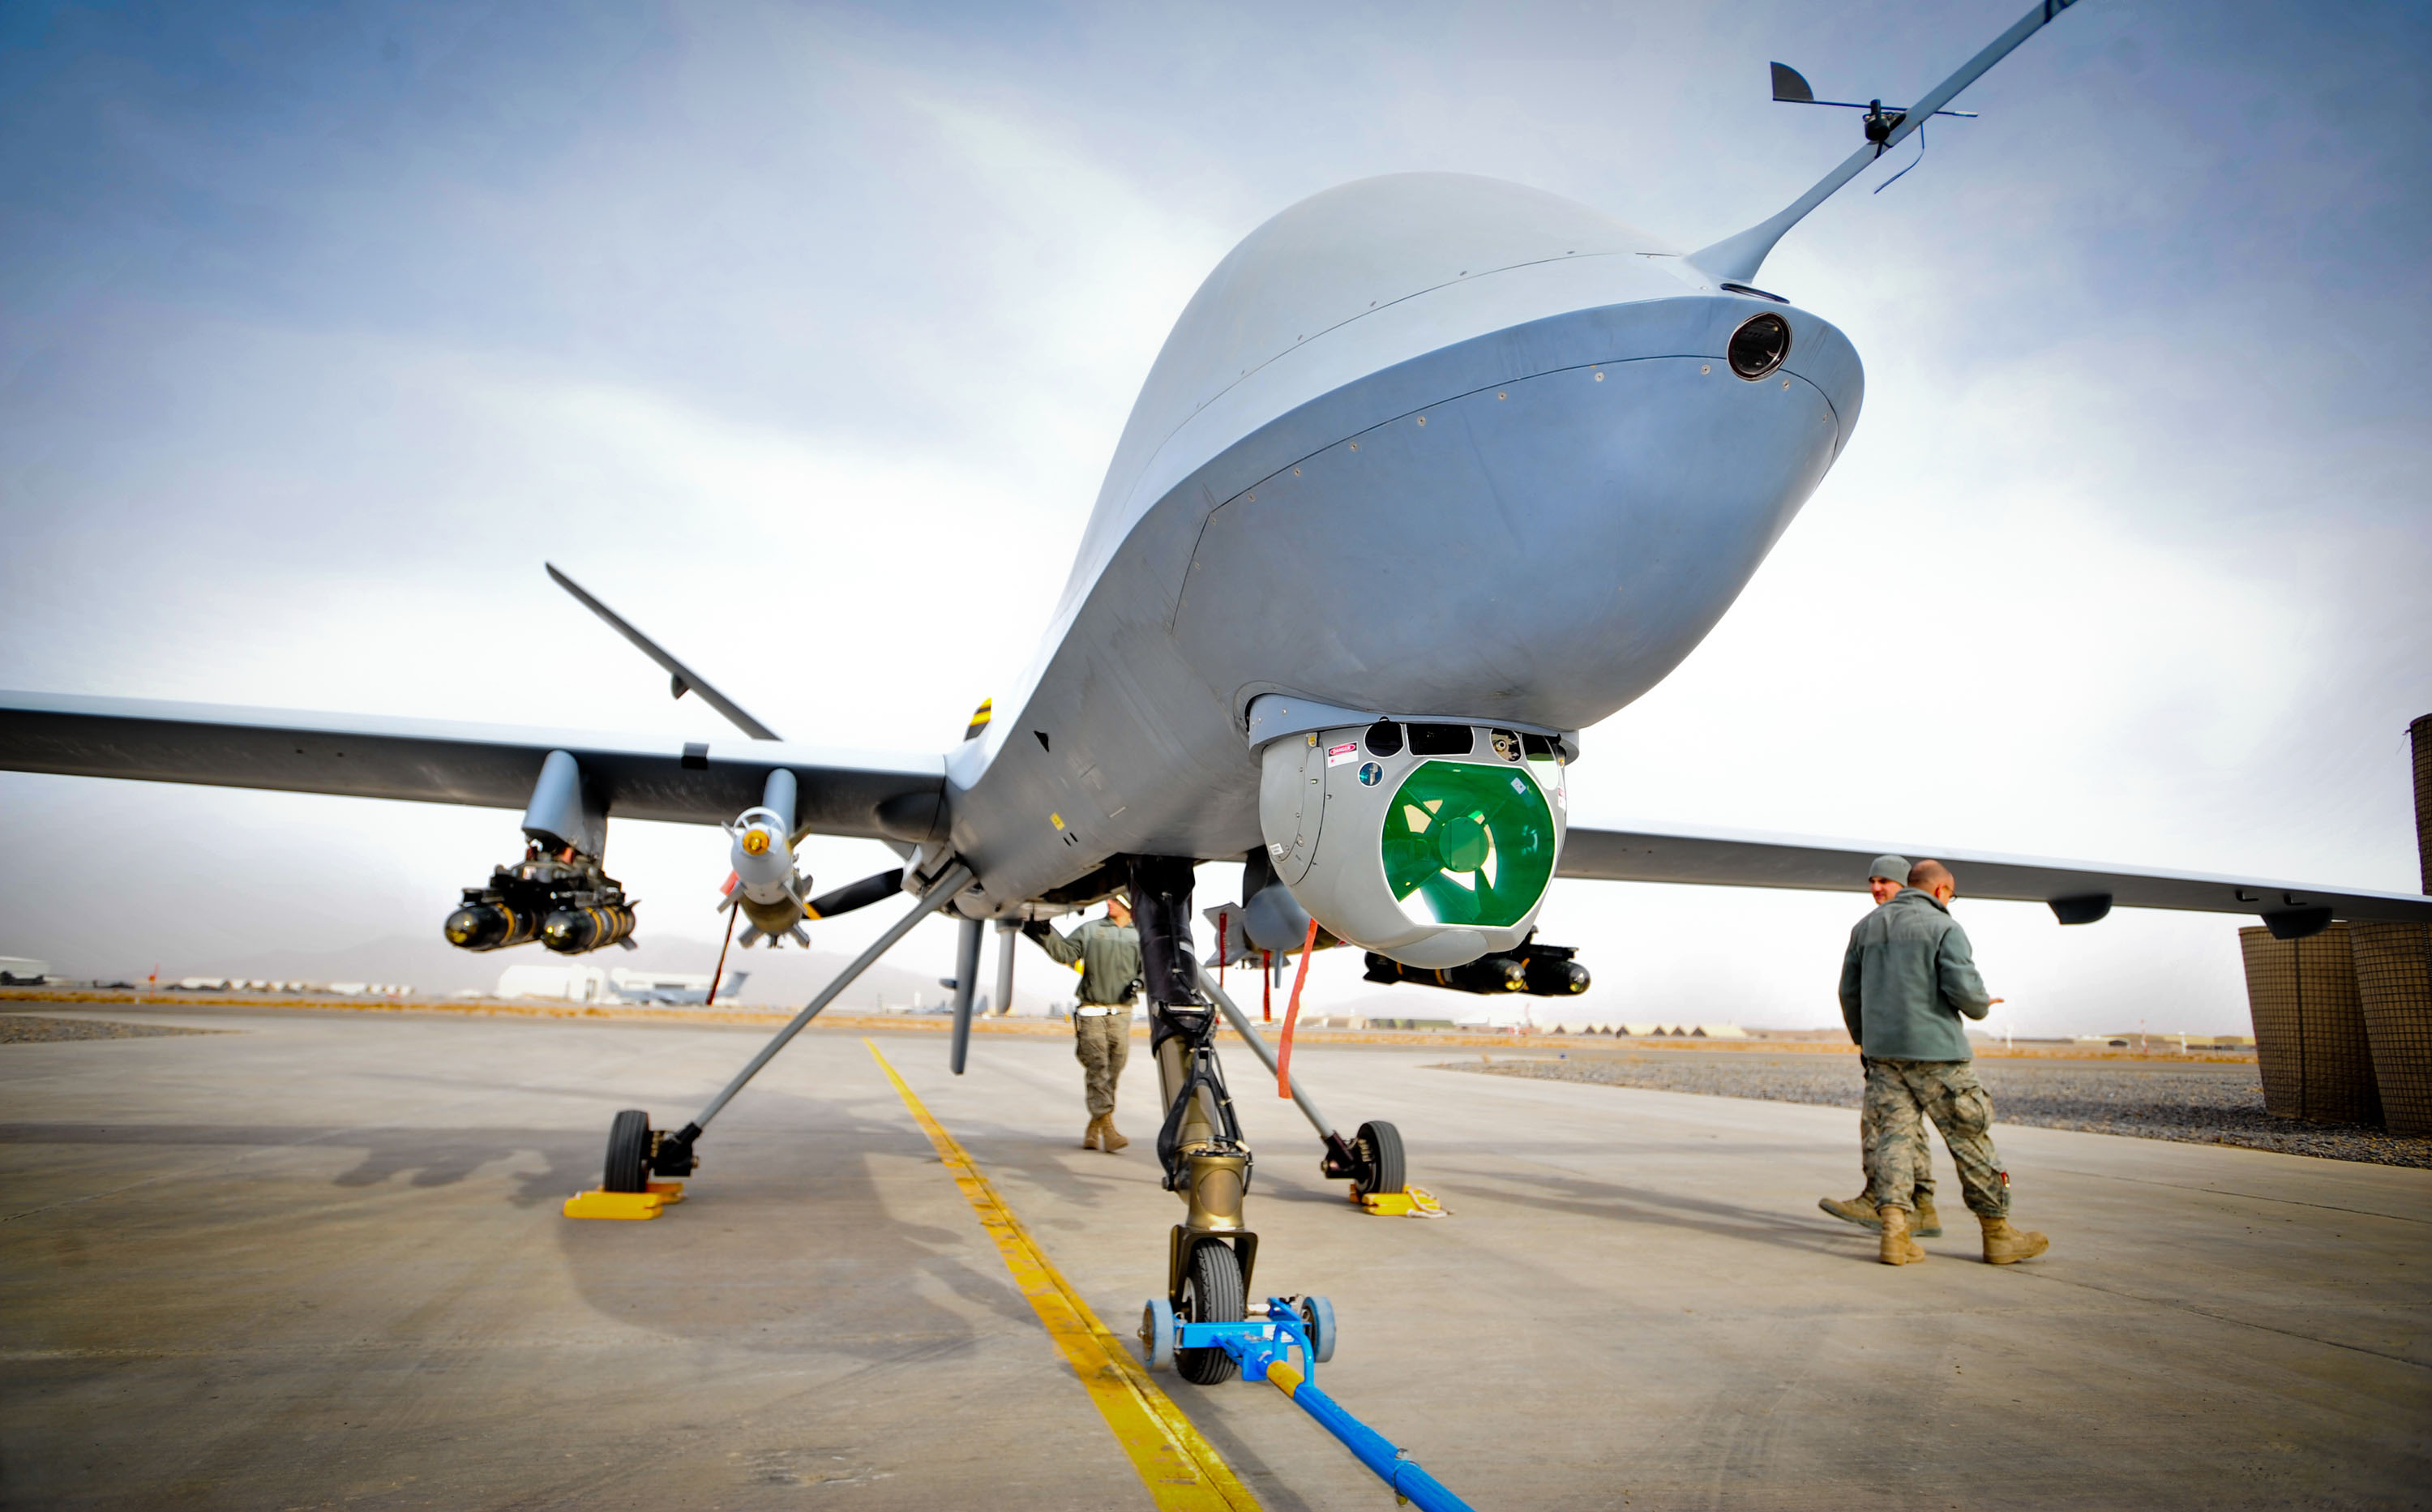 reaper uav with File Reaper Remotely Piloted Air System  Rpas  Mod 45152482 on Us Homeland Securitys Drones Really Suck At Border Patrol together with 501820 besides Uavs Drive Sat  Modernization additionally Drones Over Malta Italy Be es U S Drone Base Of Operations likewise Us Drone Strike Leaves 3 Militants Dead Along Durand Line 0139.